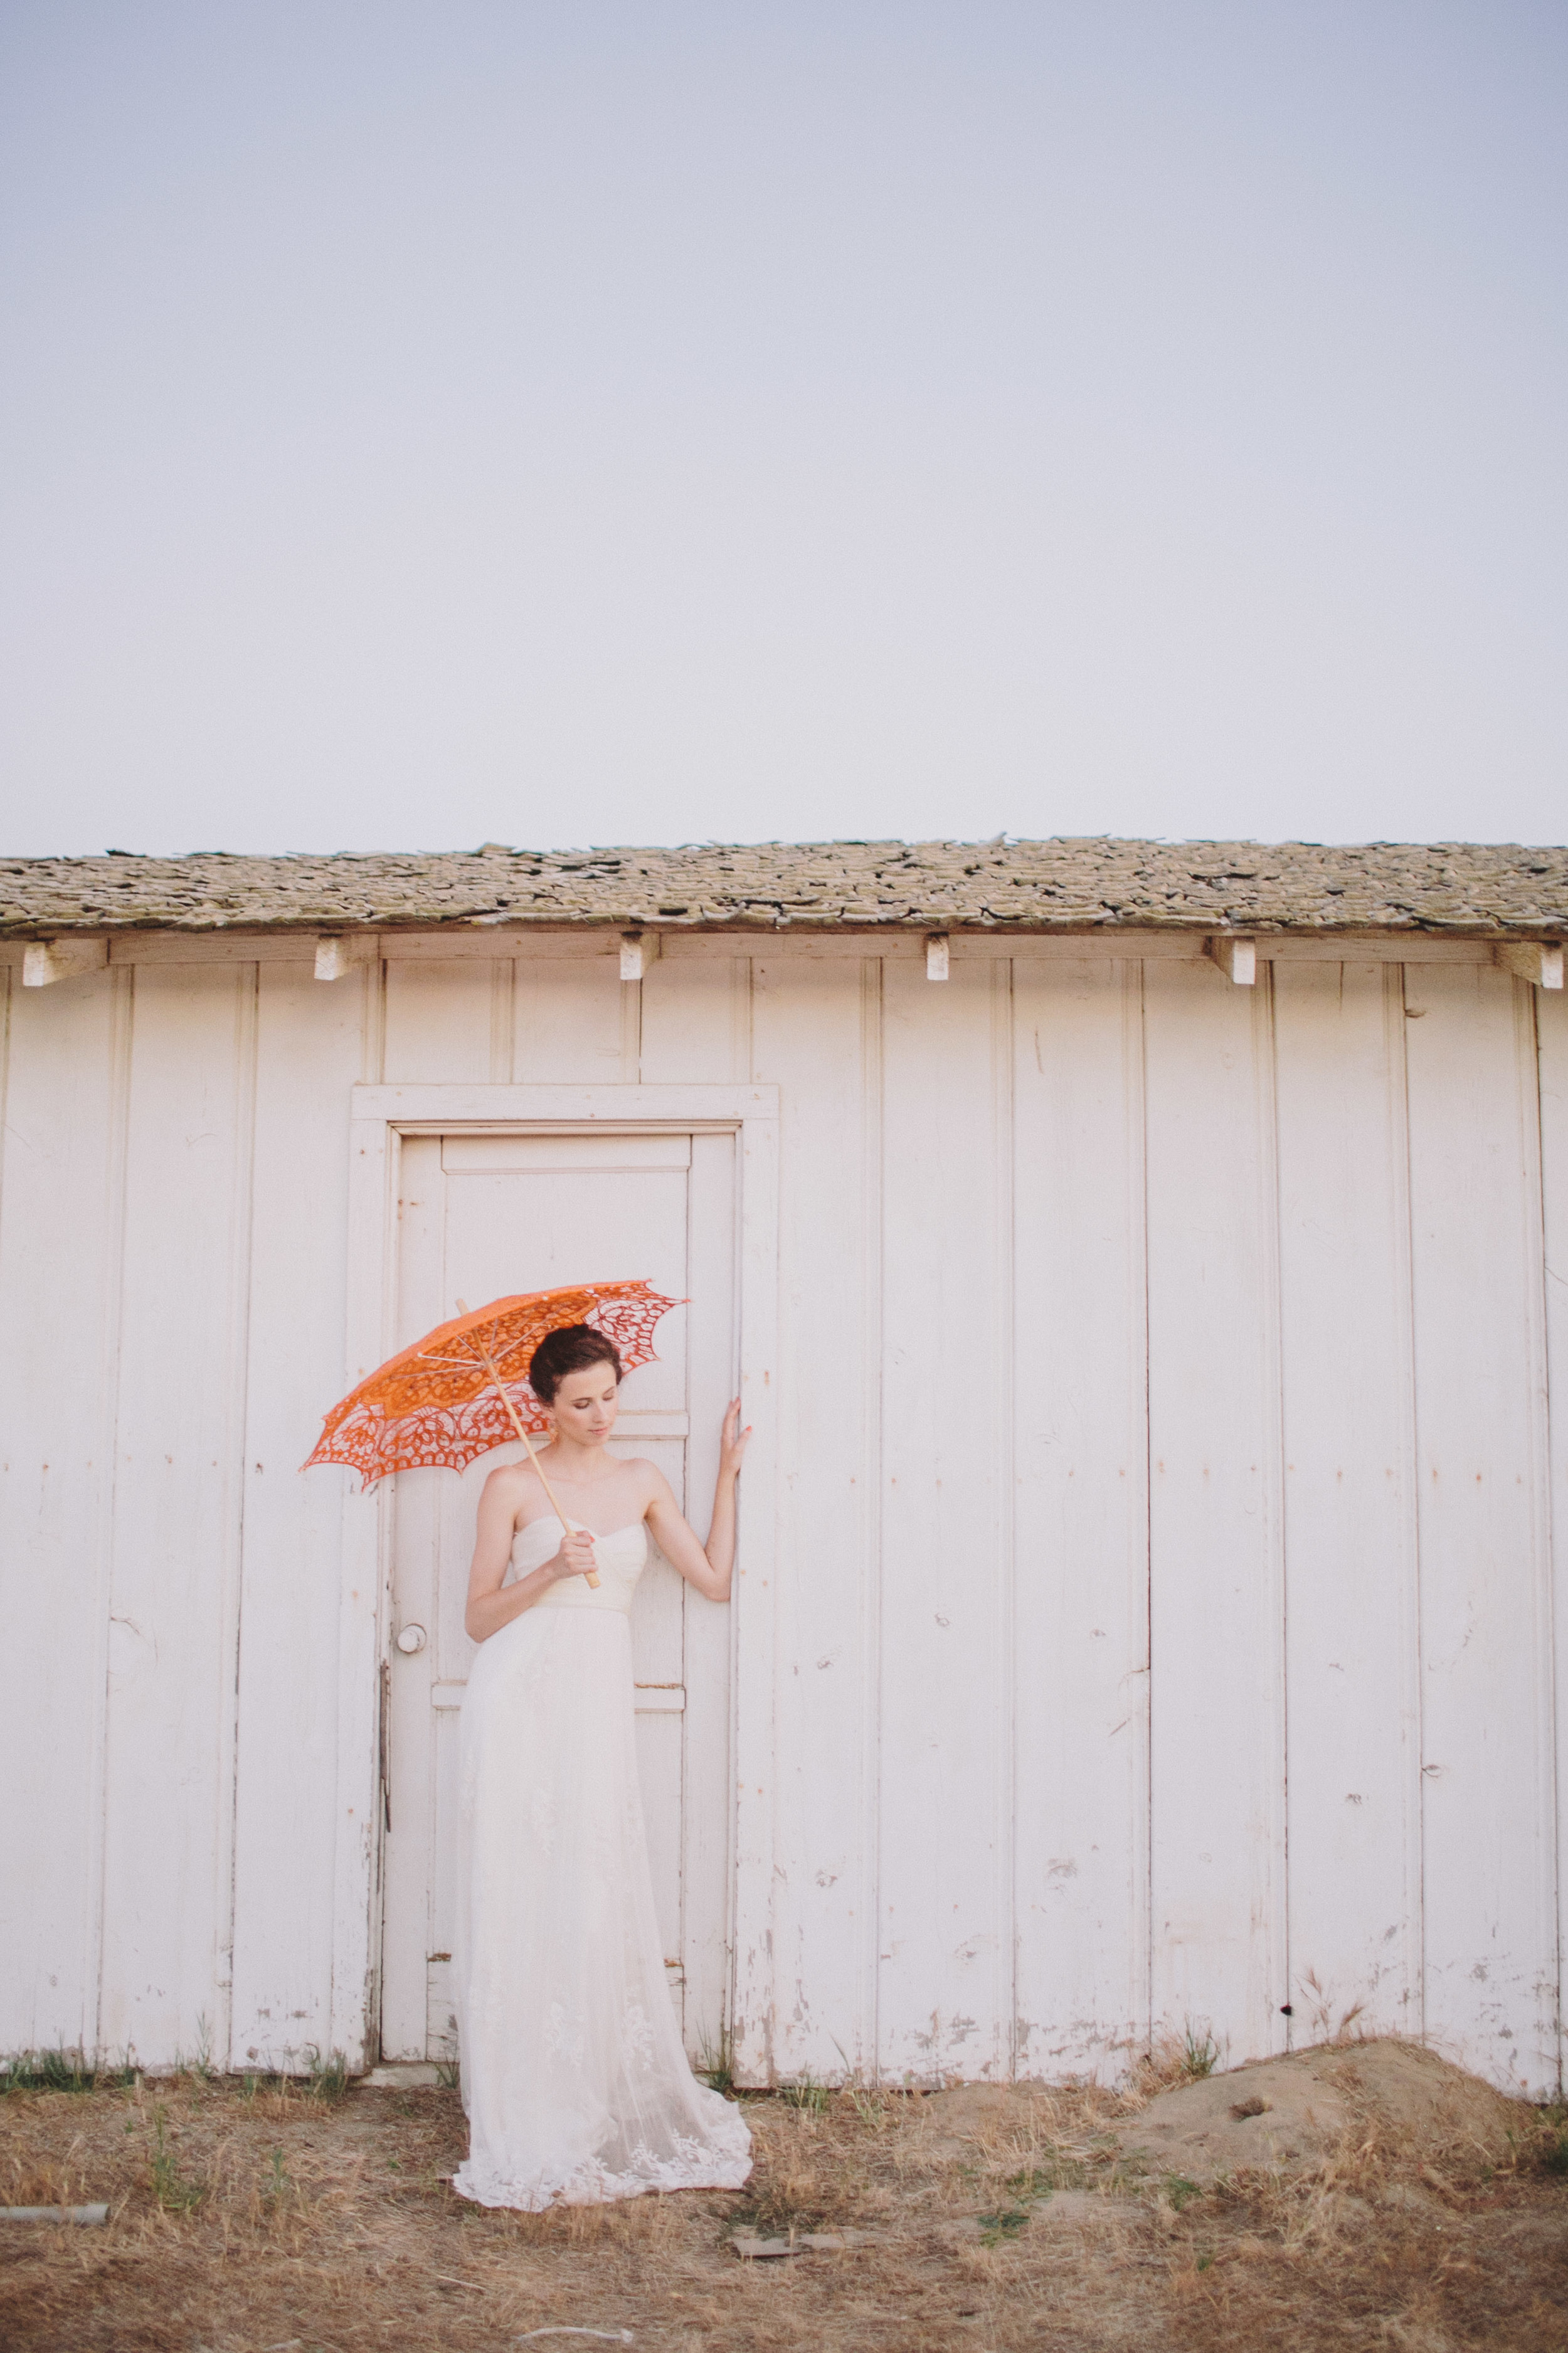 Photo by Anna Delores Photography